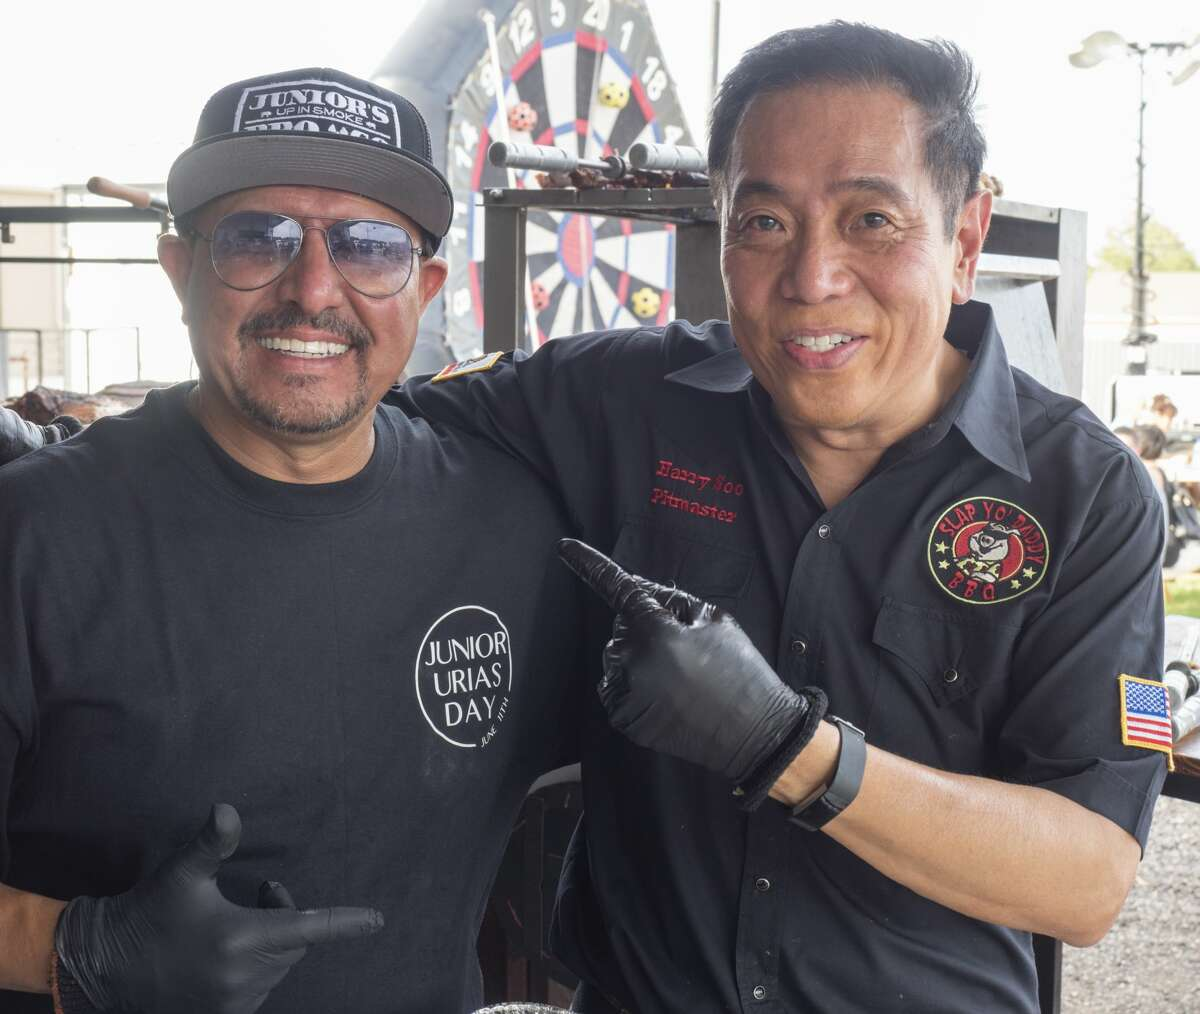 """Junior Urias, Pitmaster from Midland, TX, and Harry Soo, Pitmaster from California, joke they are """"brothers from a different mother"""" 06/22/19 evening during the Junior Urias Day celebration at Up in Smoke. Tim Fischer/Reporter-Telegram"""